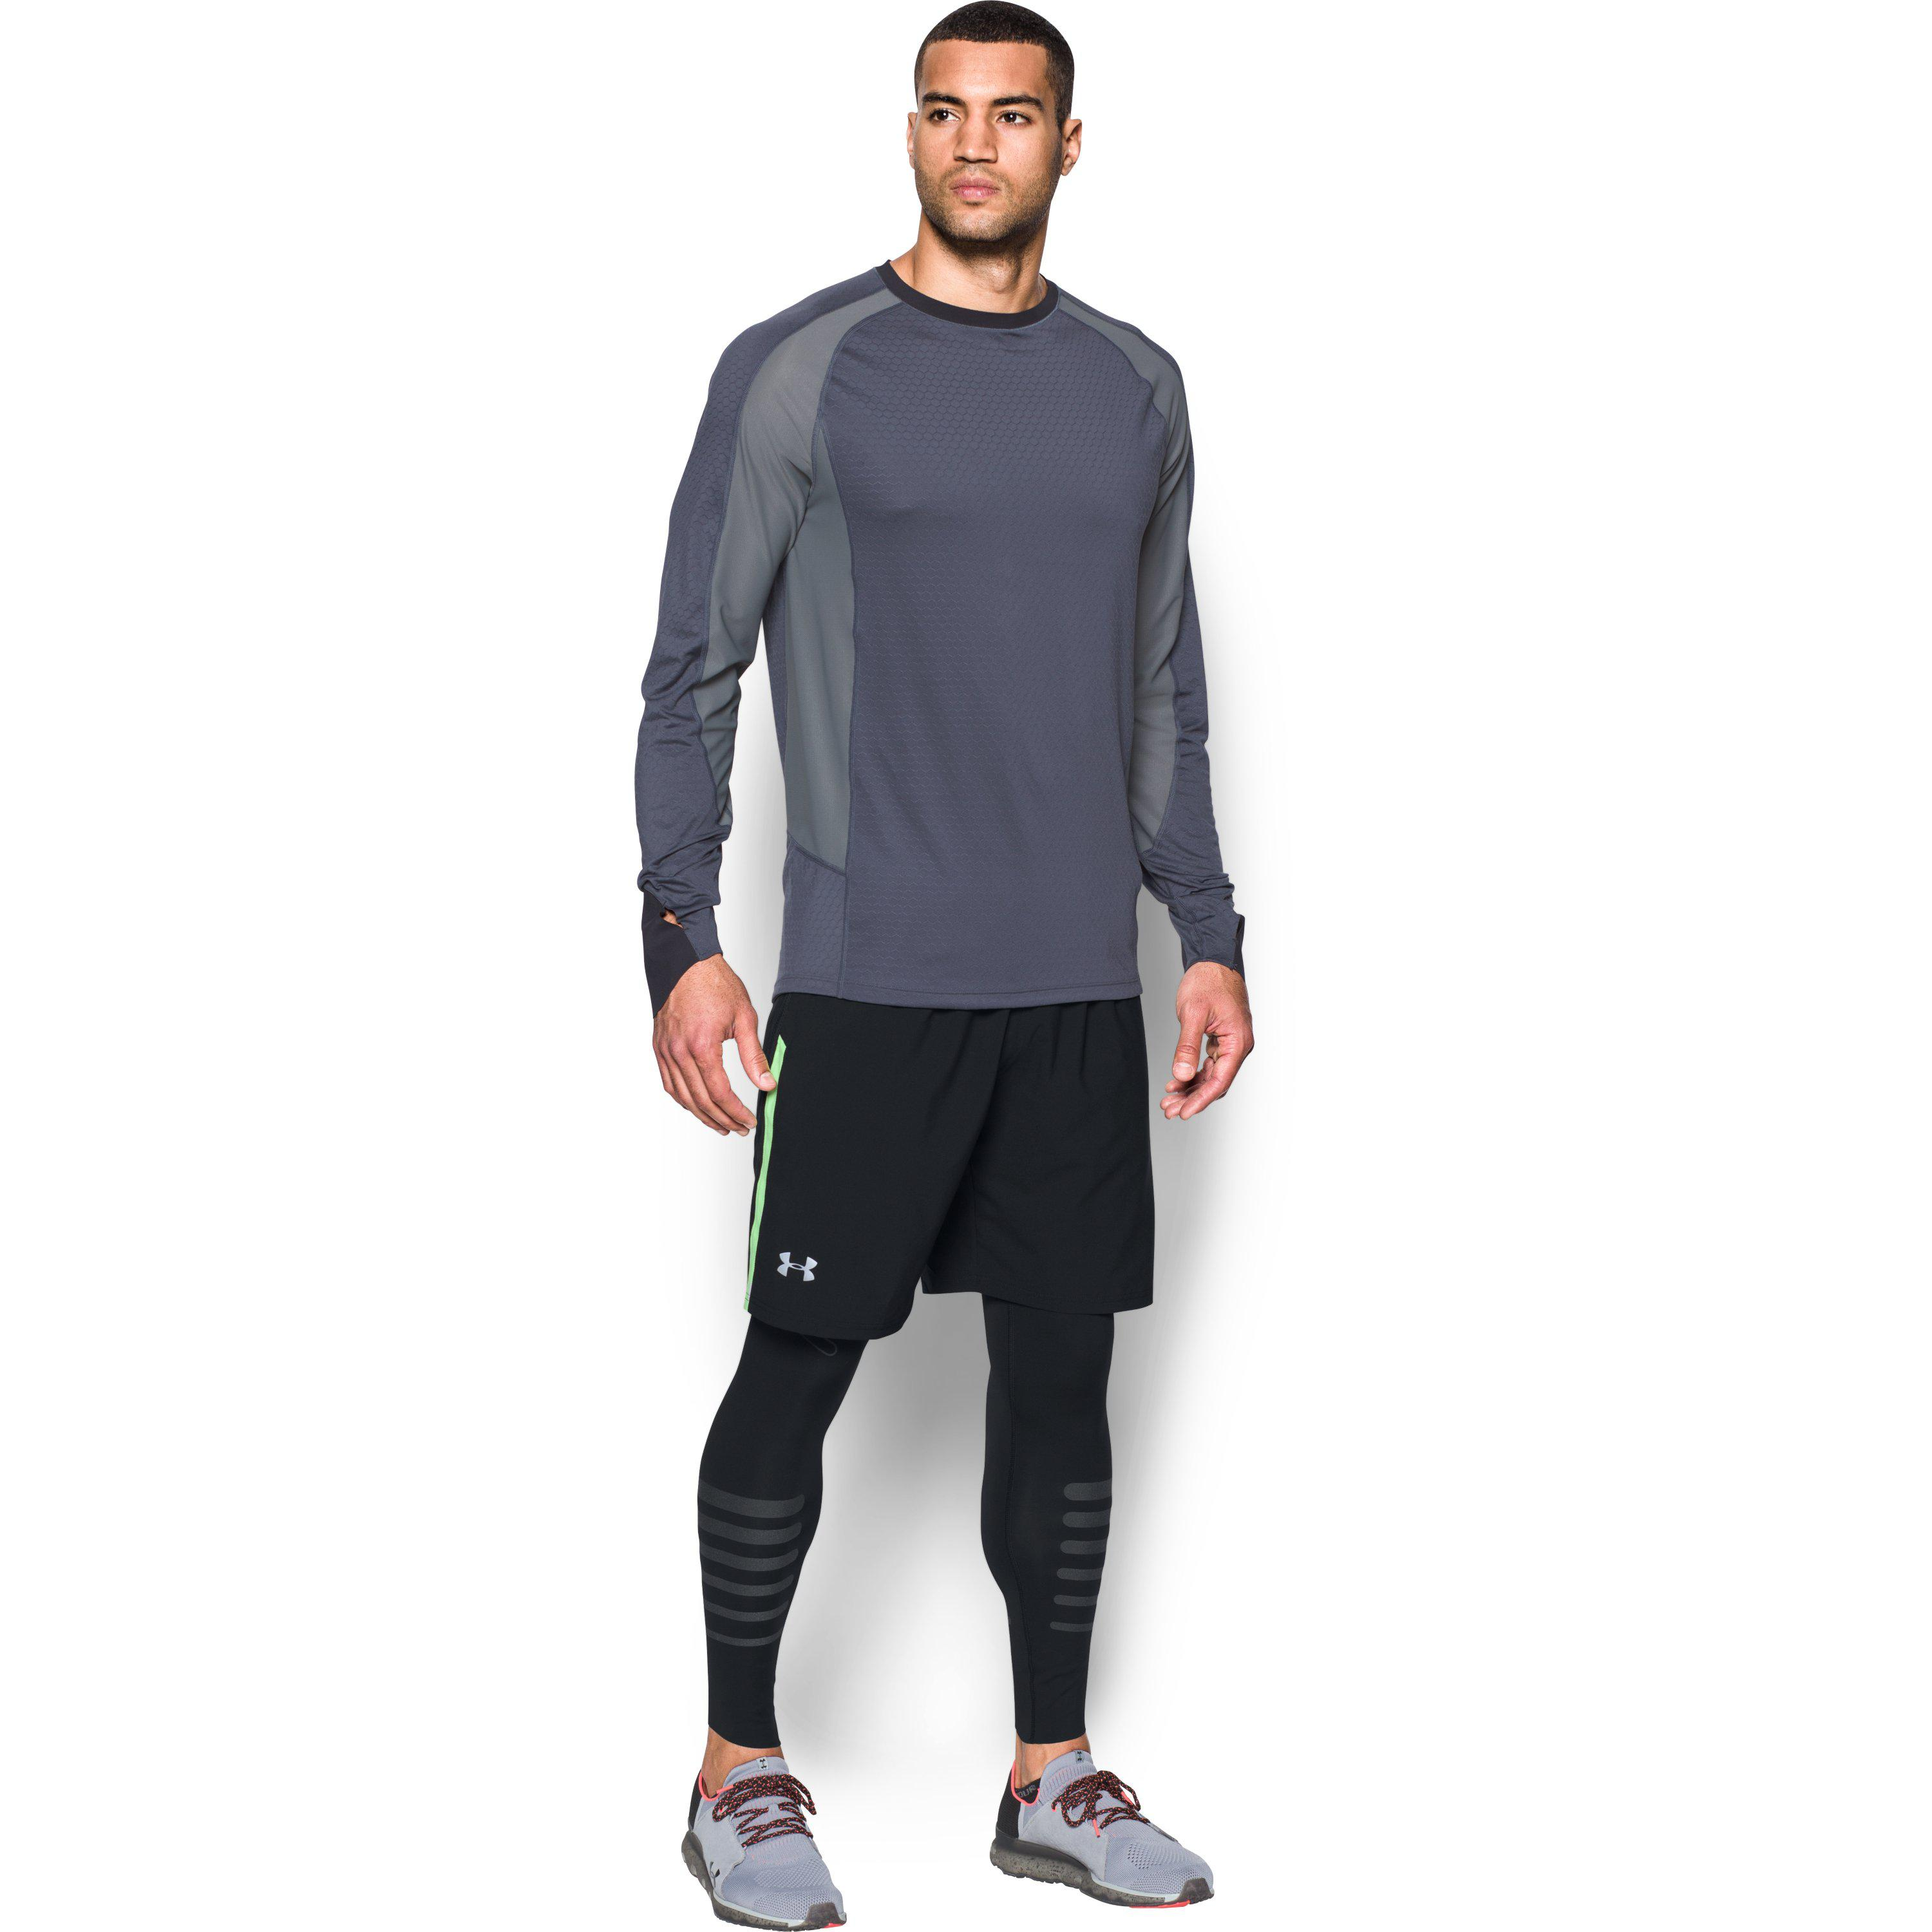 a9ae242b45 Under Armour Men's Ua Accelerate Reflective Leggings in Black for ...